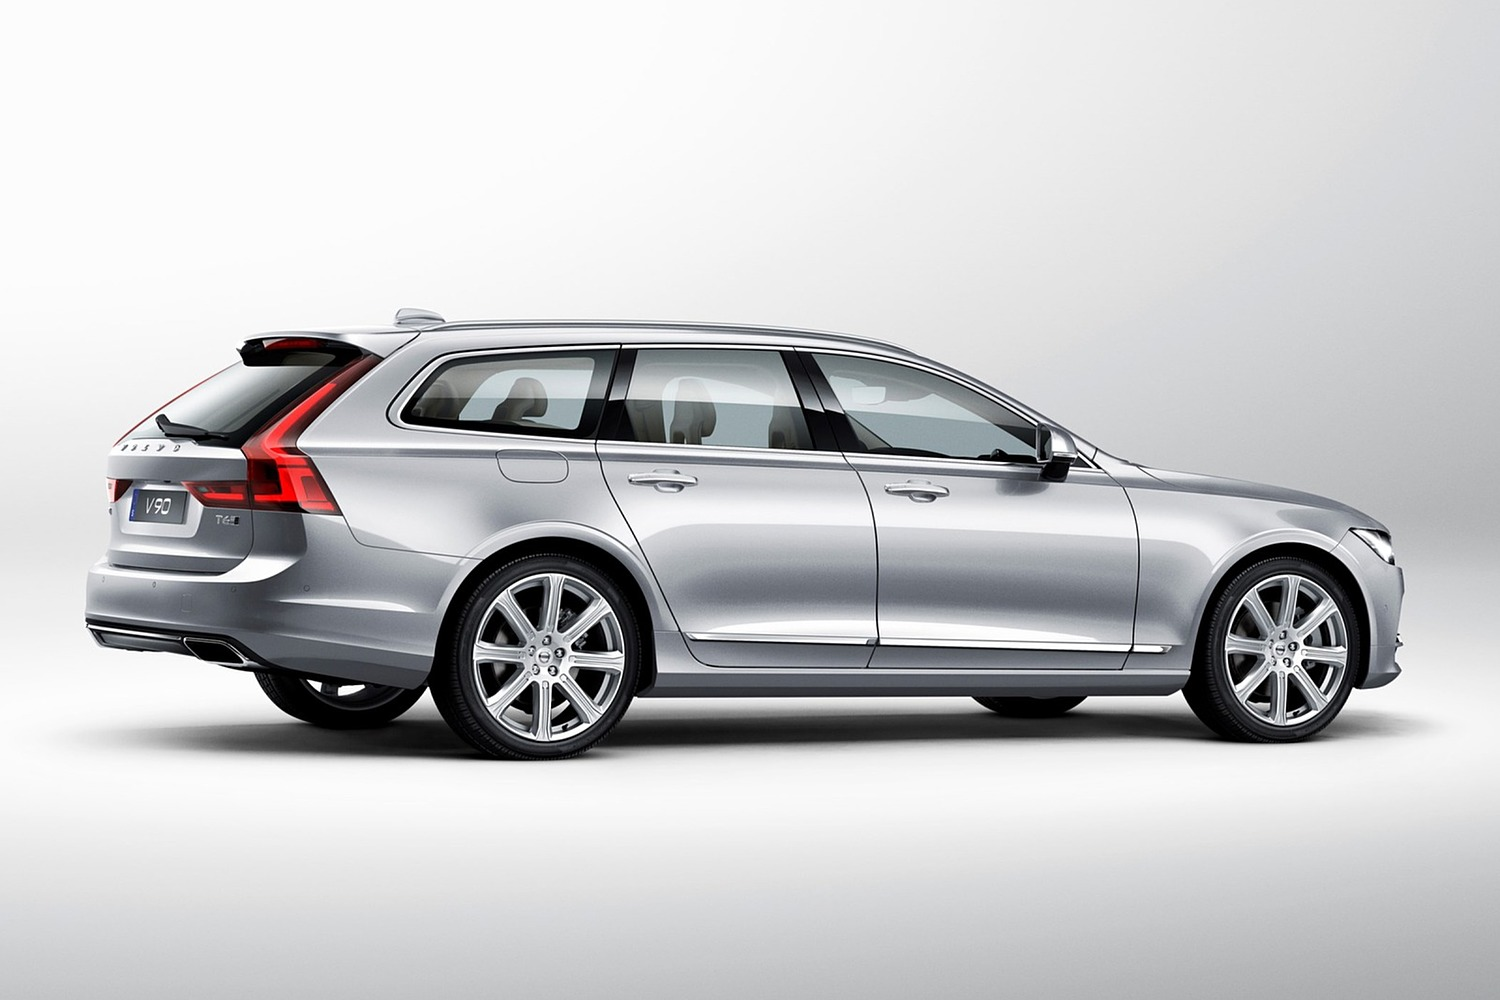 2018 Volvo V90 Wagon Exterior. Target Launch Spring 2017.